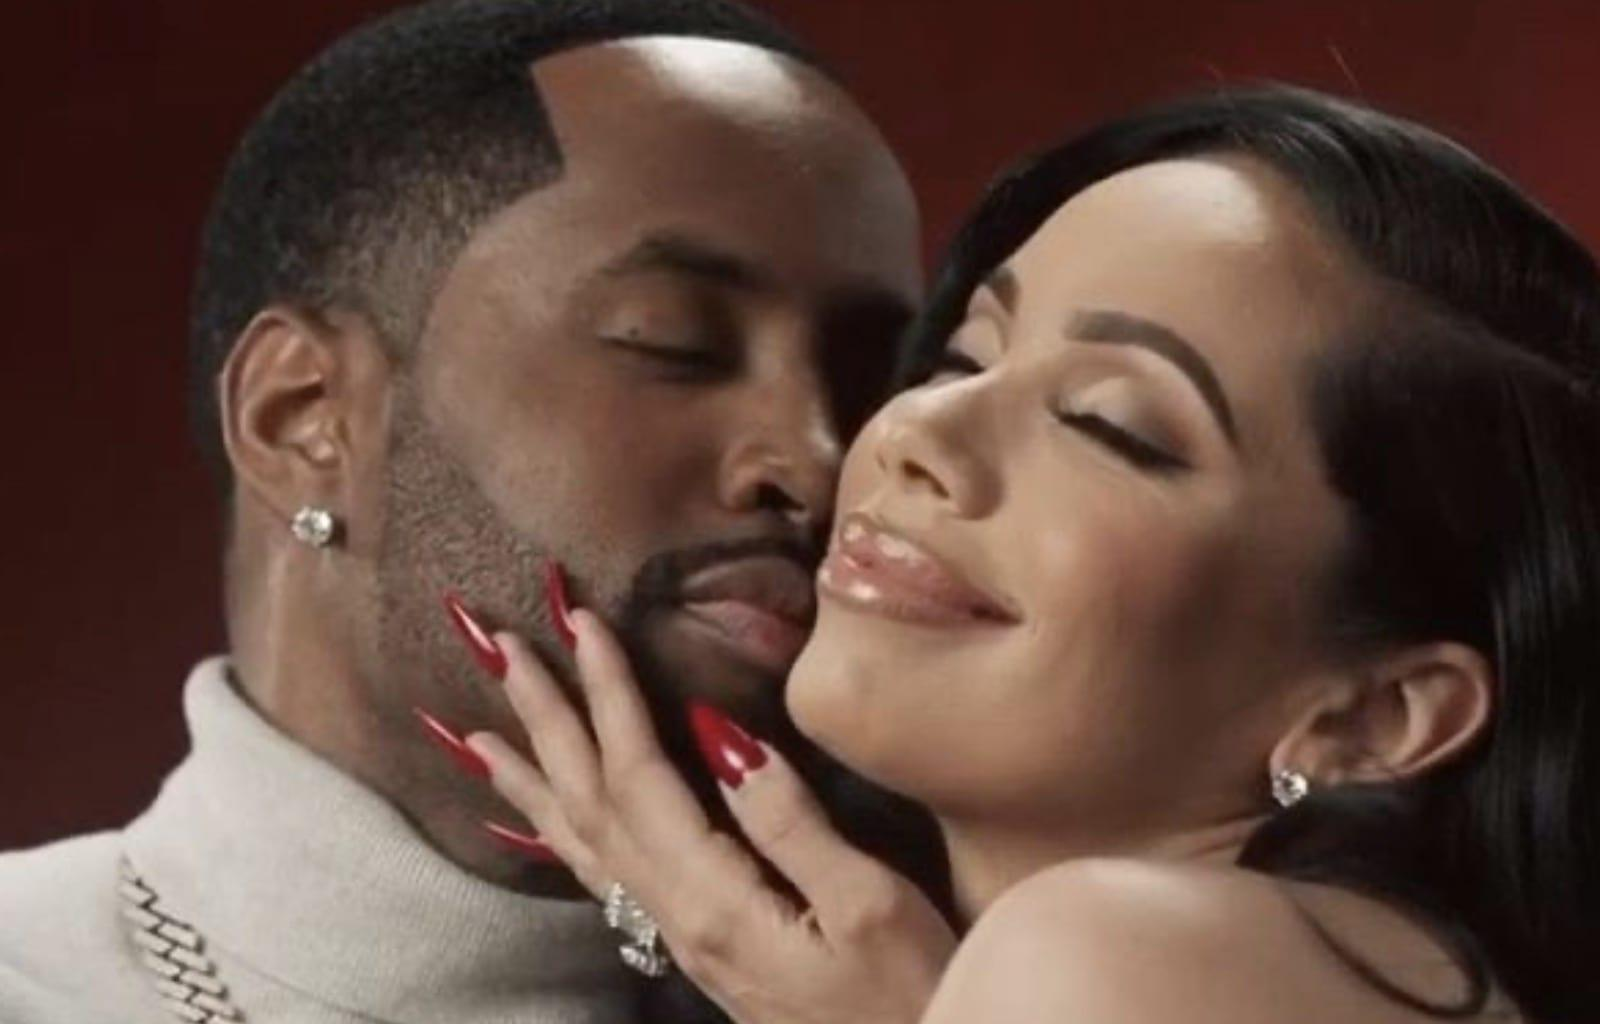 Safaree Publicly Says Getting Married Was His Biggest Mistake - Erica Mena Responds